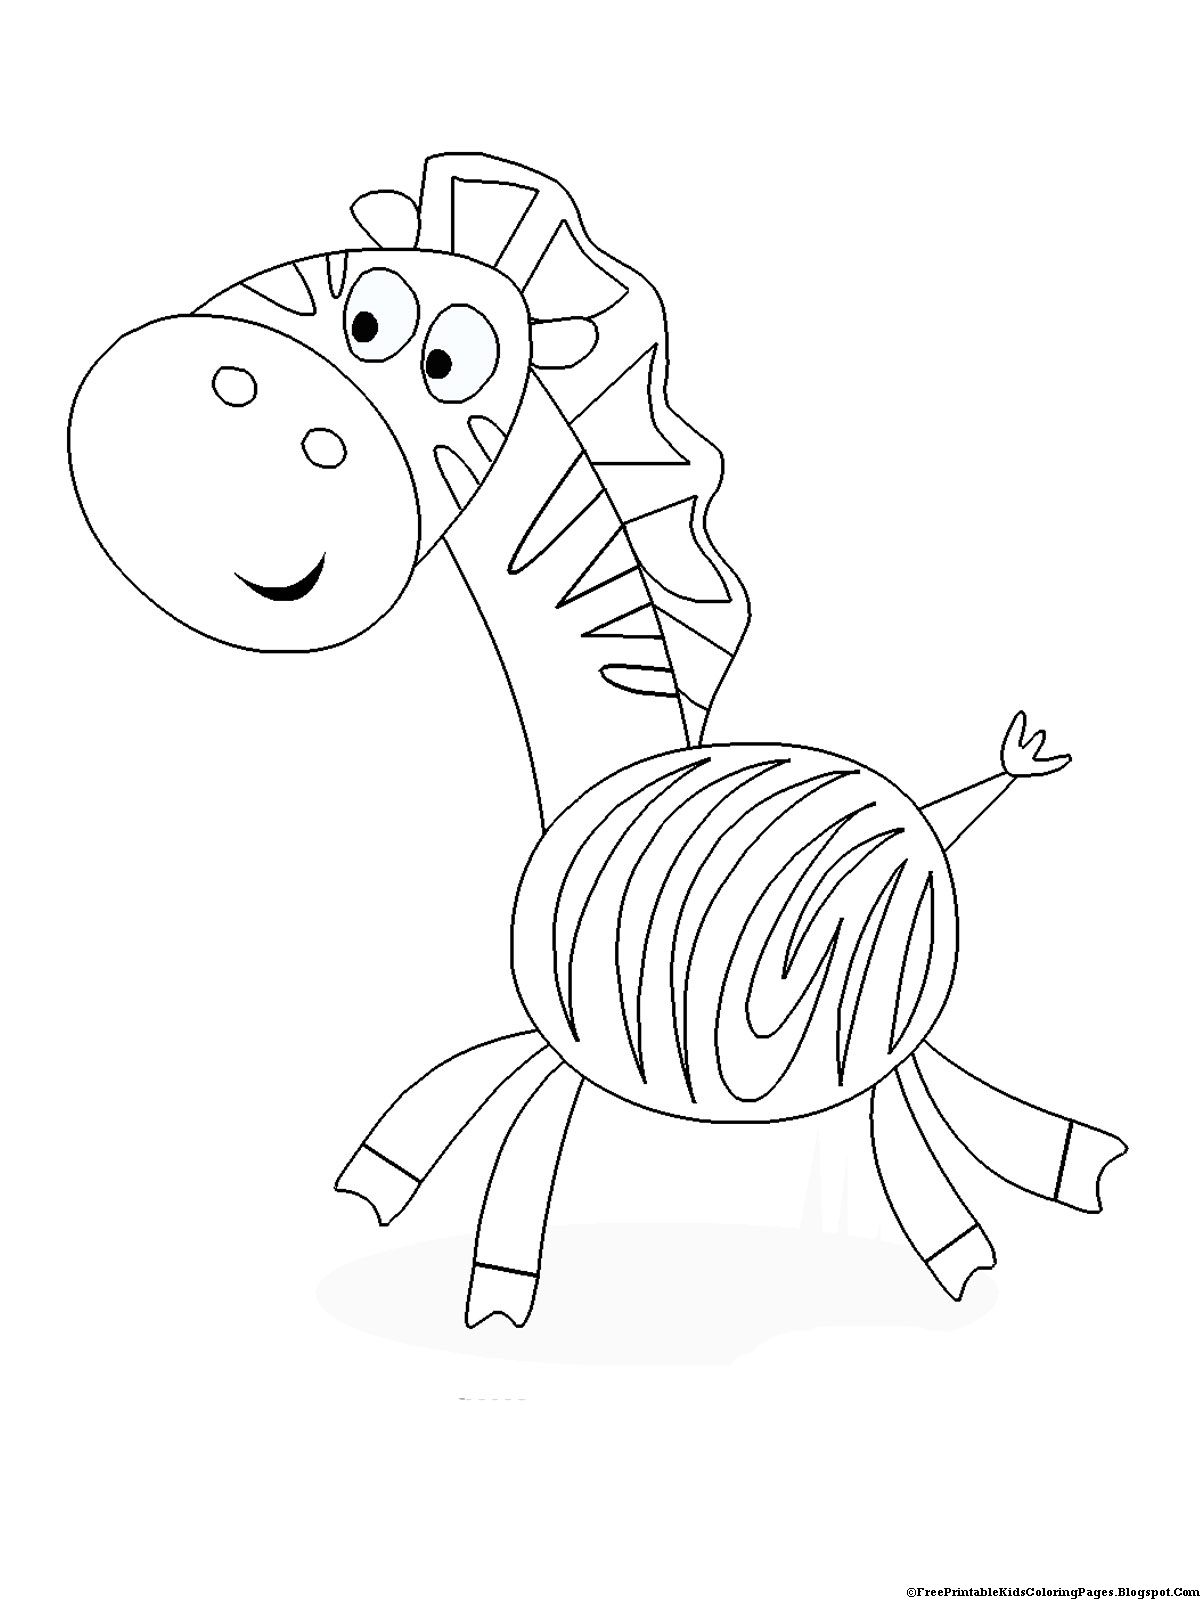 coloring free printable kids free printable tangled coloring pages for kids cool2bkids free kids printable coloring